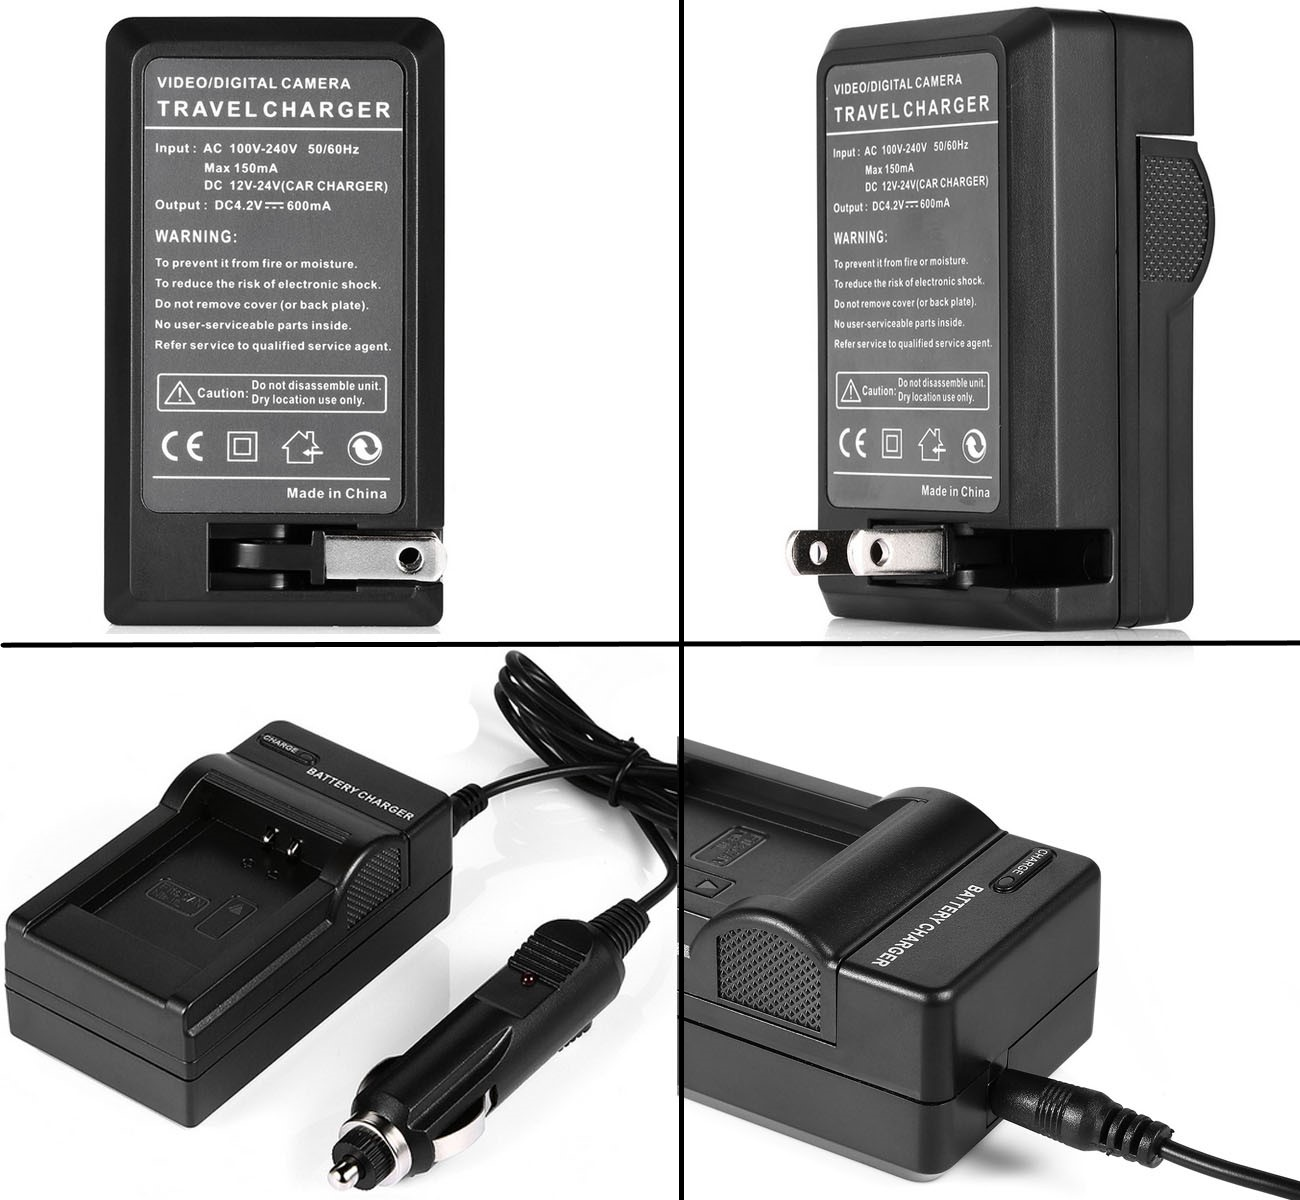 HDR-CX190E Handycam Camcorder AC Power Adapter Charger for Sony HDR-CX160E HDR-CX180E HDR-CX170E